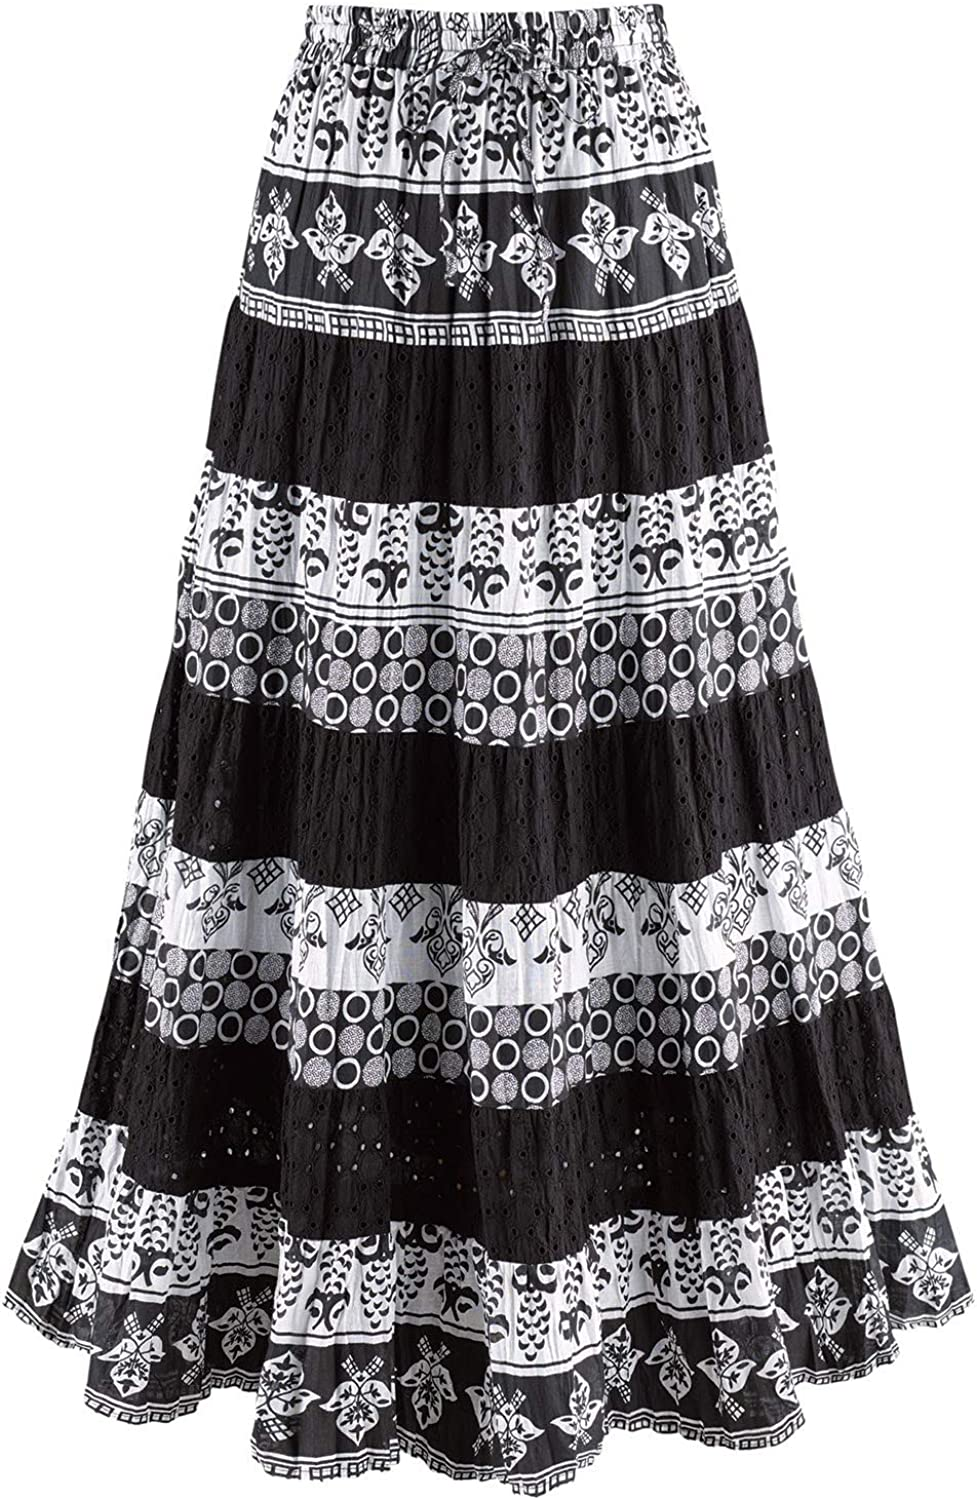 CATALOG CLASSICS Women's Tiered Eyelet Maxi Skirt - Black and White Mixed Patterns